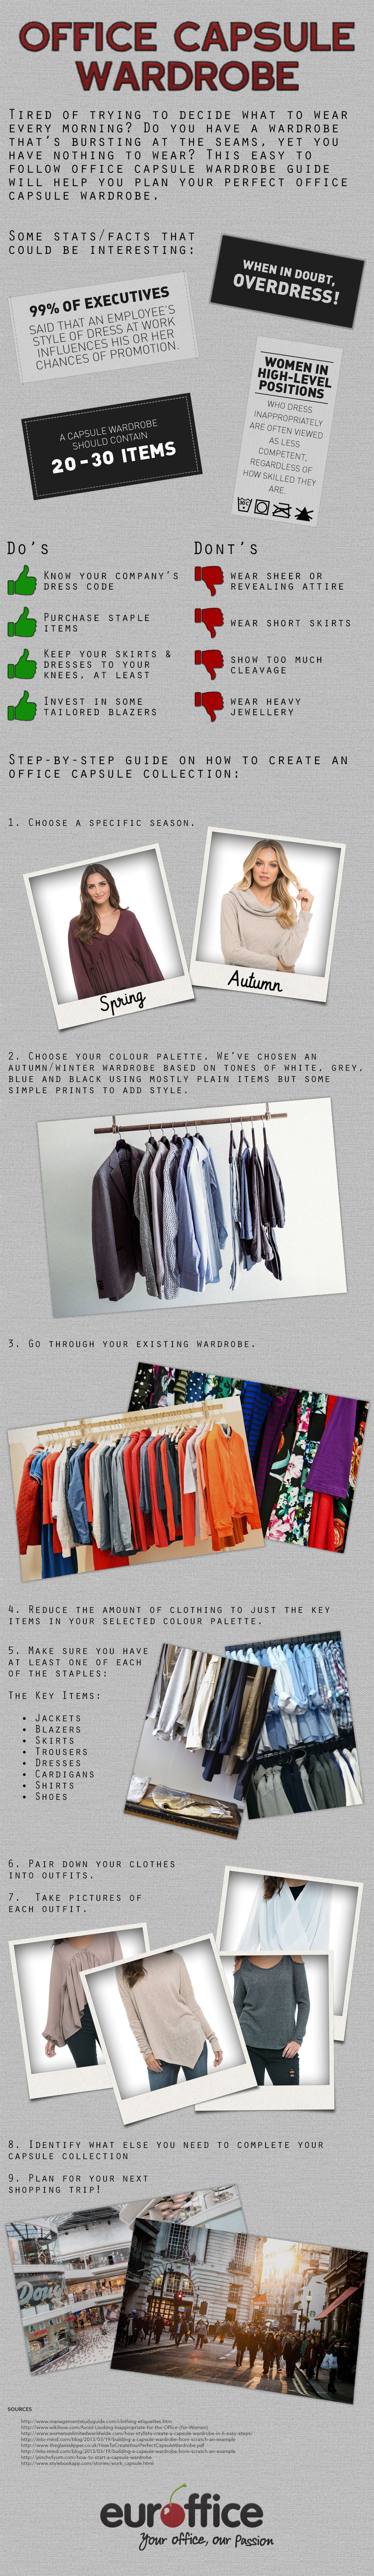 101 on Putting Together a Killer Office Capsule Wardrobe